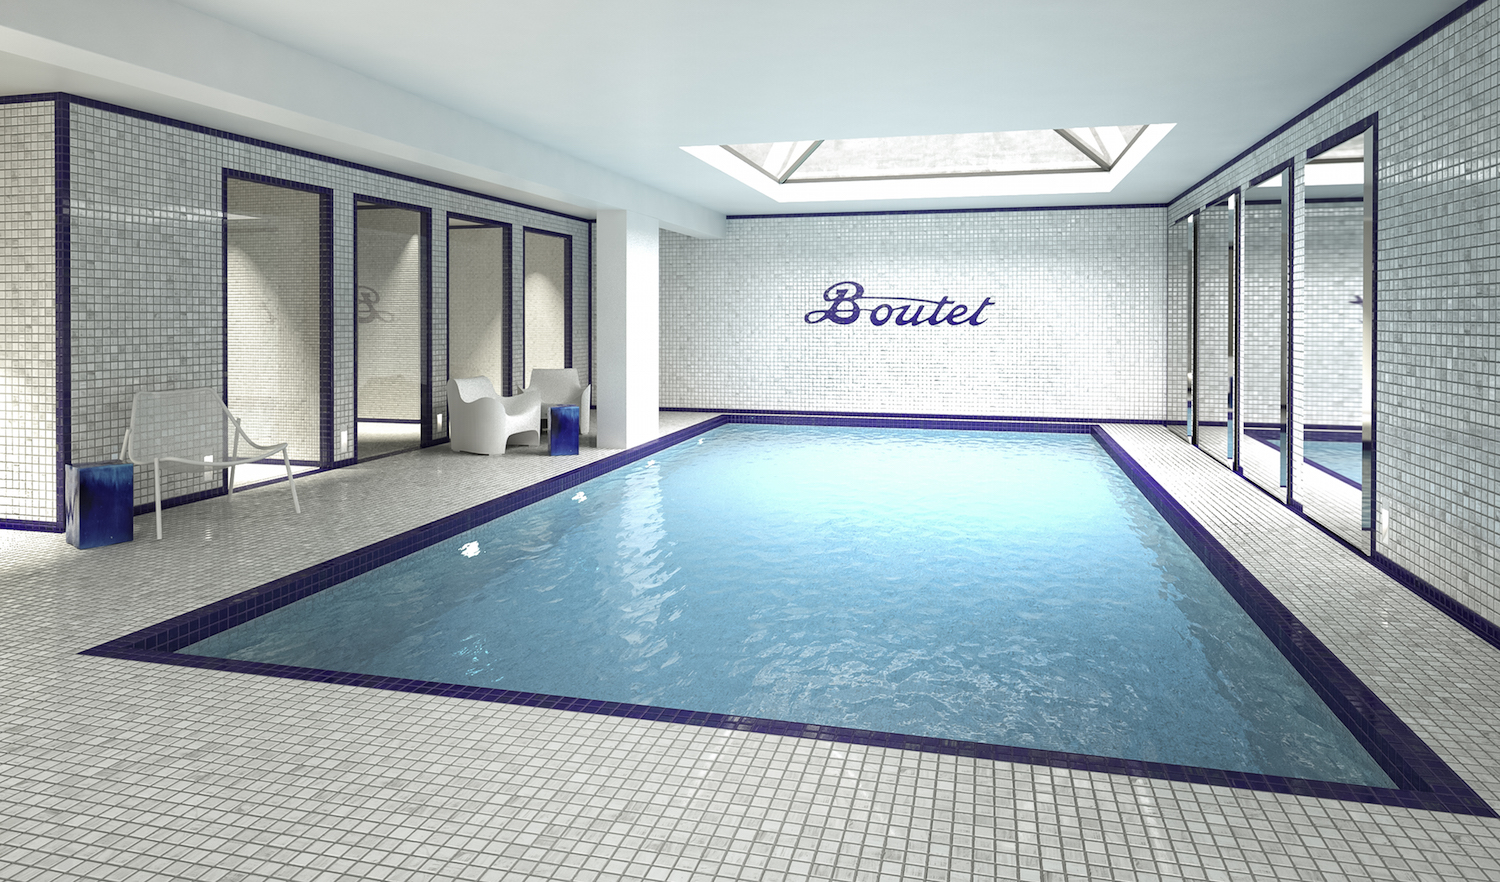 Hotel paris bastille boutet by mgallery sur h tel paris for Paris hotel avec piscine